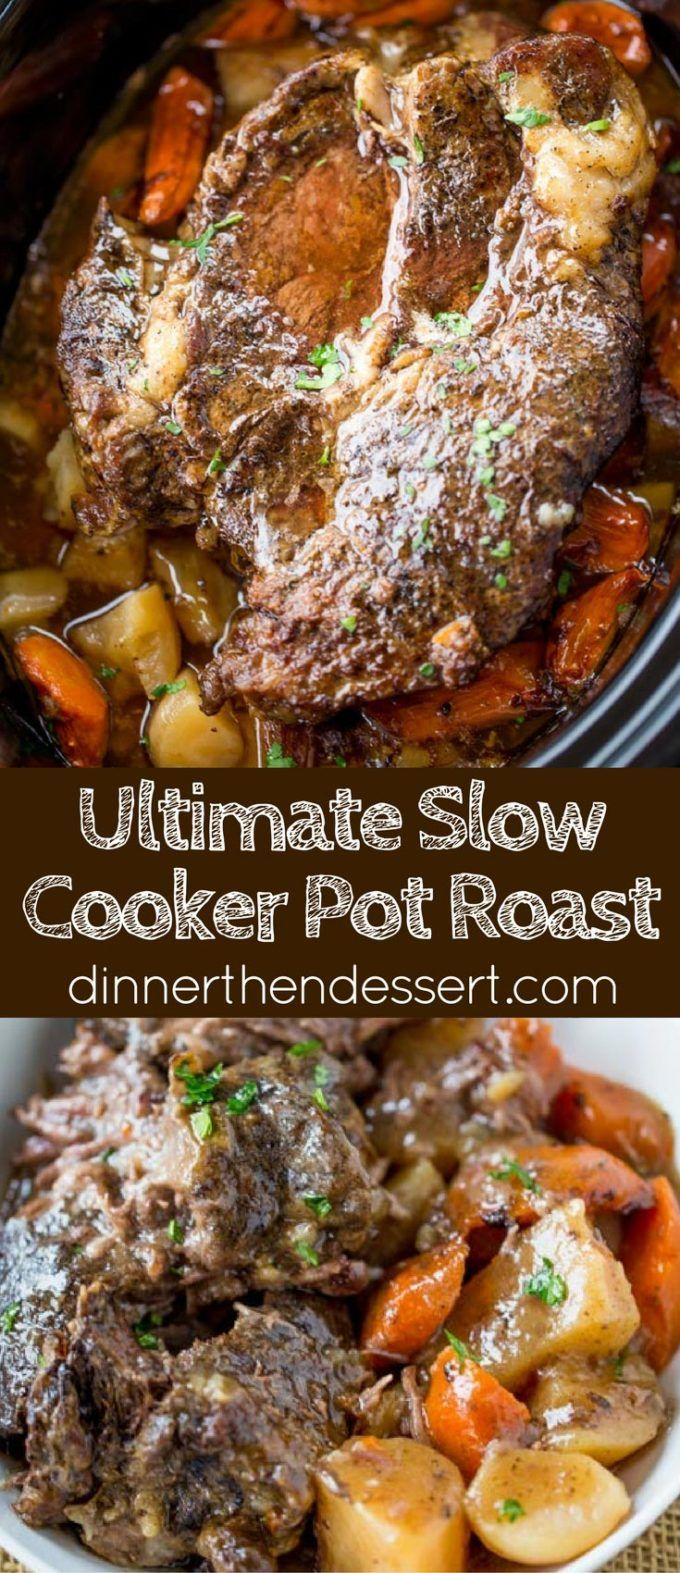 Ultimate Slow Cooker Pot Roast that leaves you with tender meat, vegetables and a built in gravy to enjoy them all with in just 15 minutes of prep! Perfect weeknight dinner!